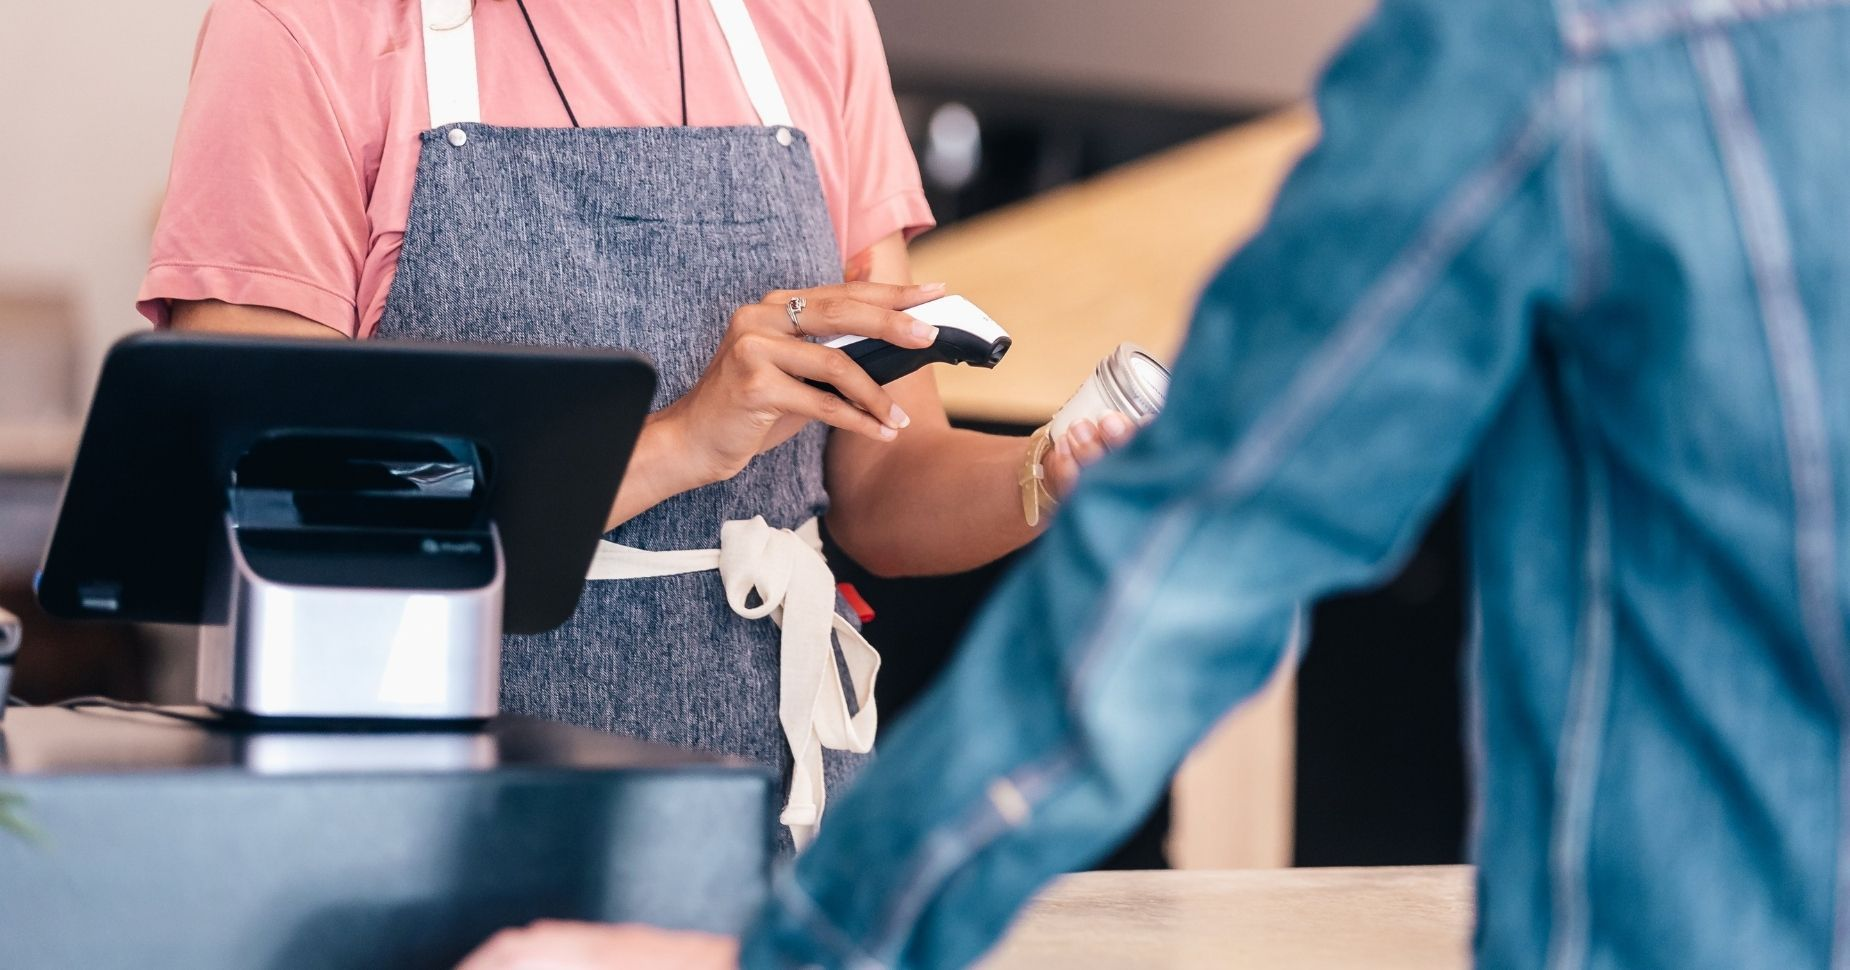 Important Roles of A POS System In Running A Retail Business